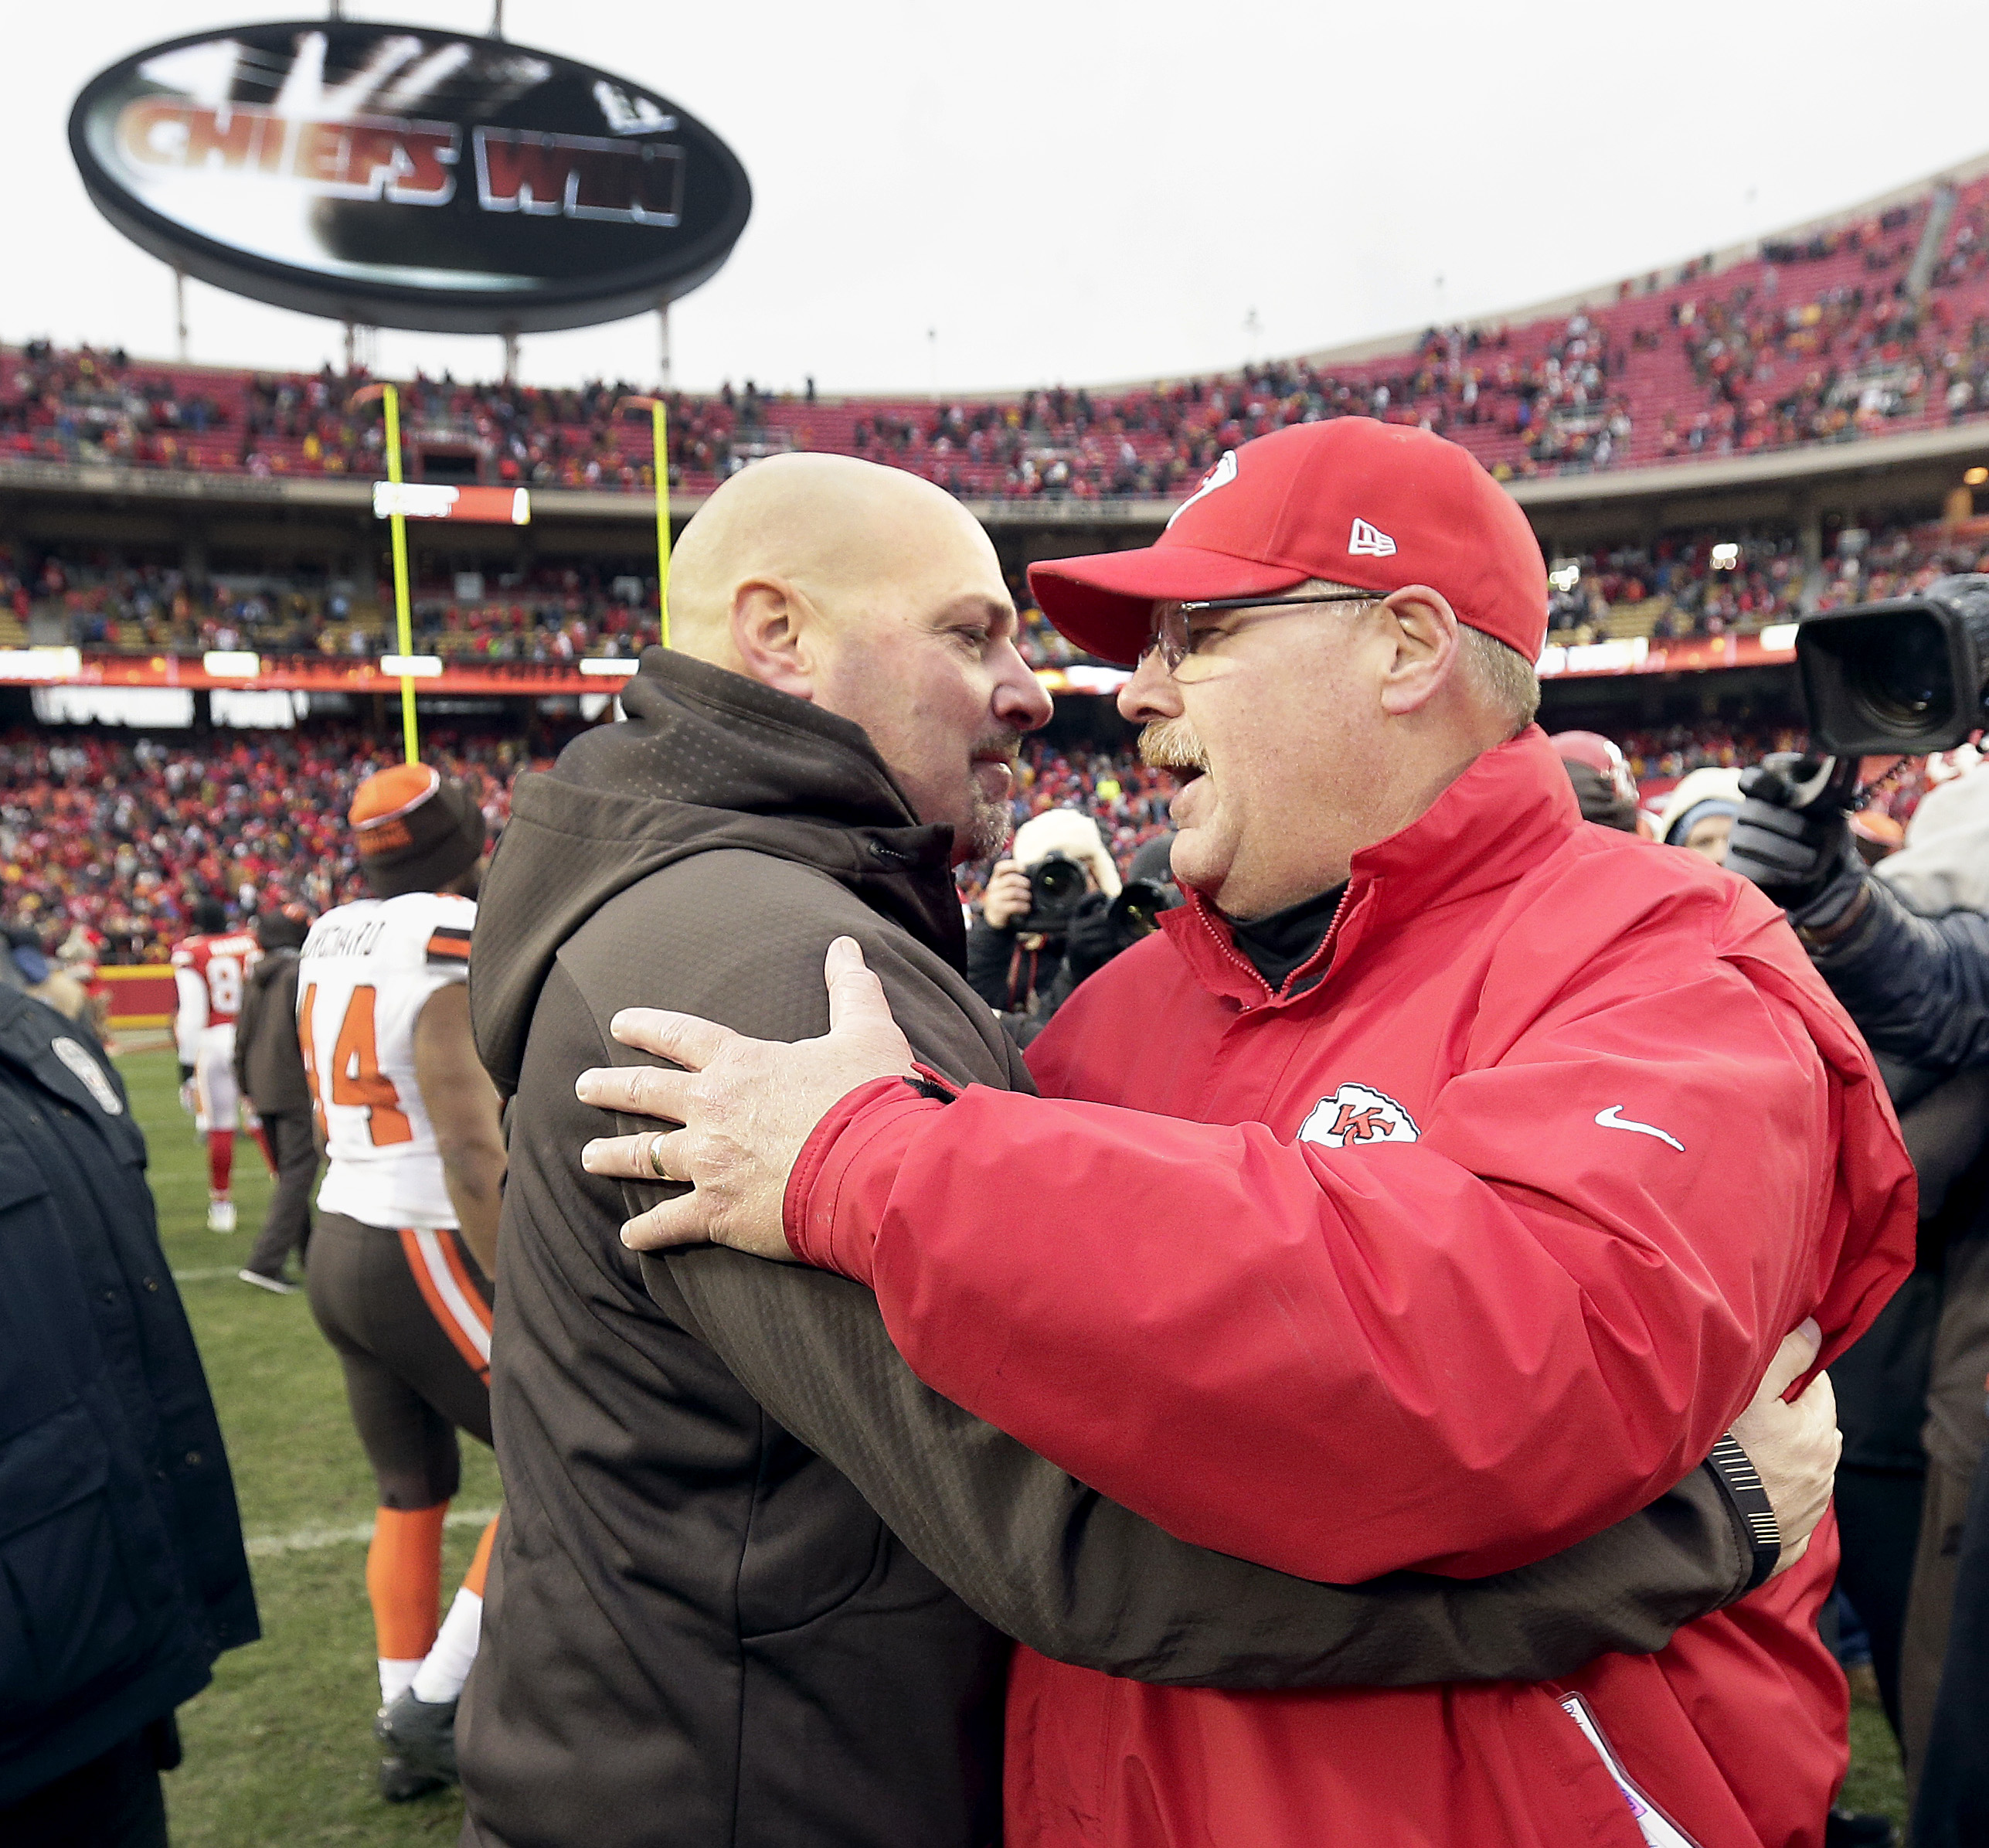 Kansas City Chiefs head coach Andy Reid, right, and Cleveland Browns head coach Mike Pettine meet on the field after their NFL football game Sunday, Dec. 27, 2015, in Kansas City, Mo. Chiefs won 17-13. (AP Photo/Charlie Riedel)